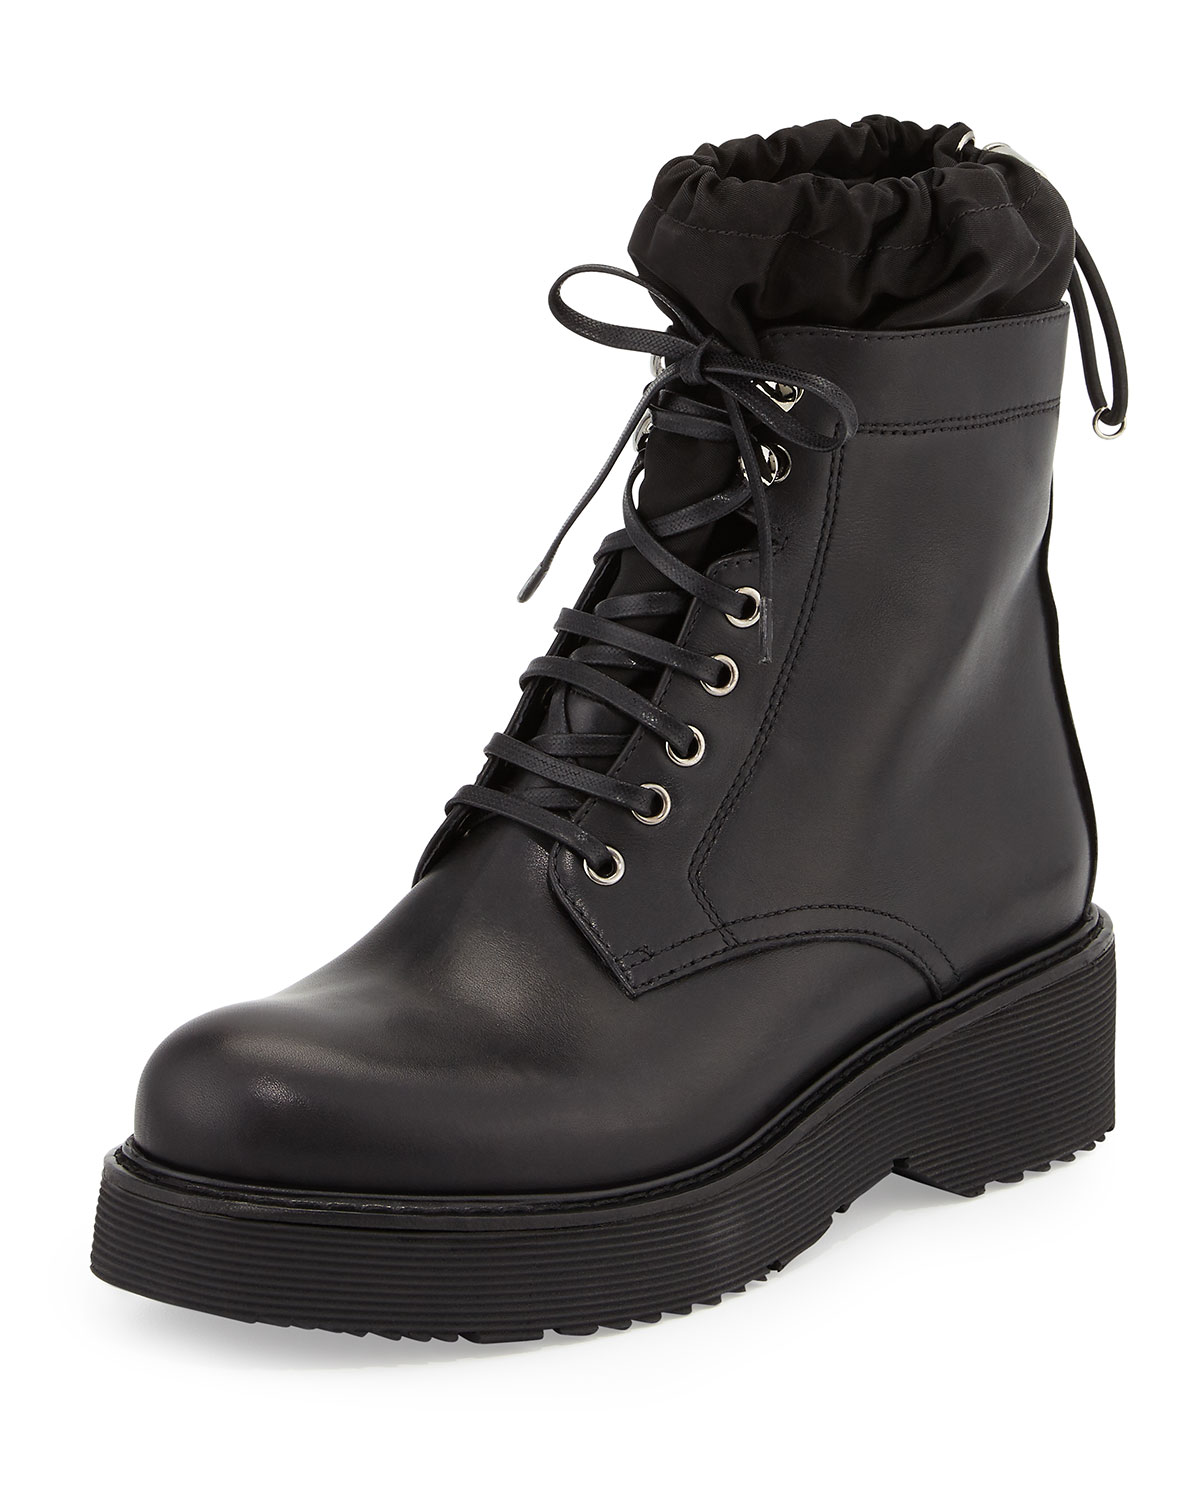 Nylon-Lined Leather Combat Boot, Black